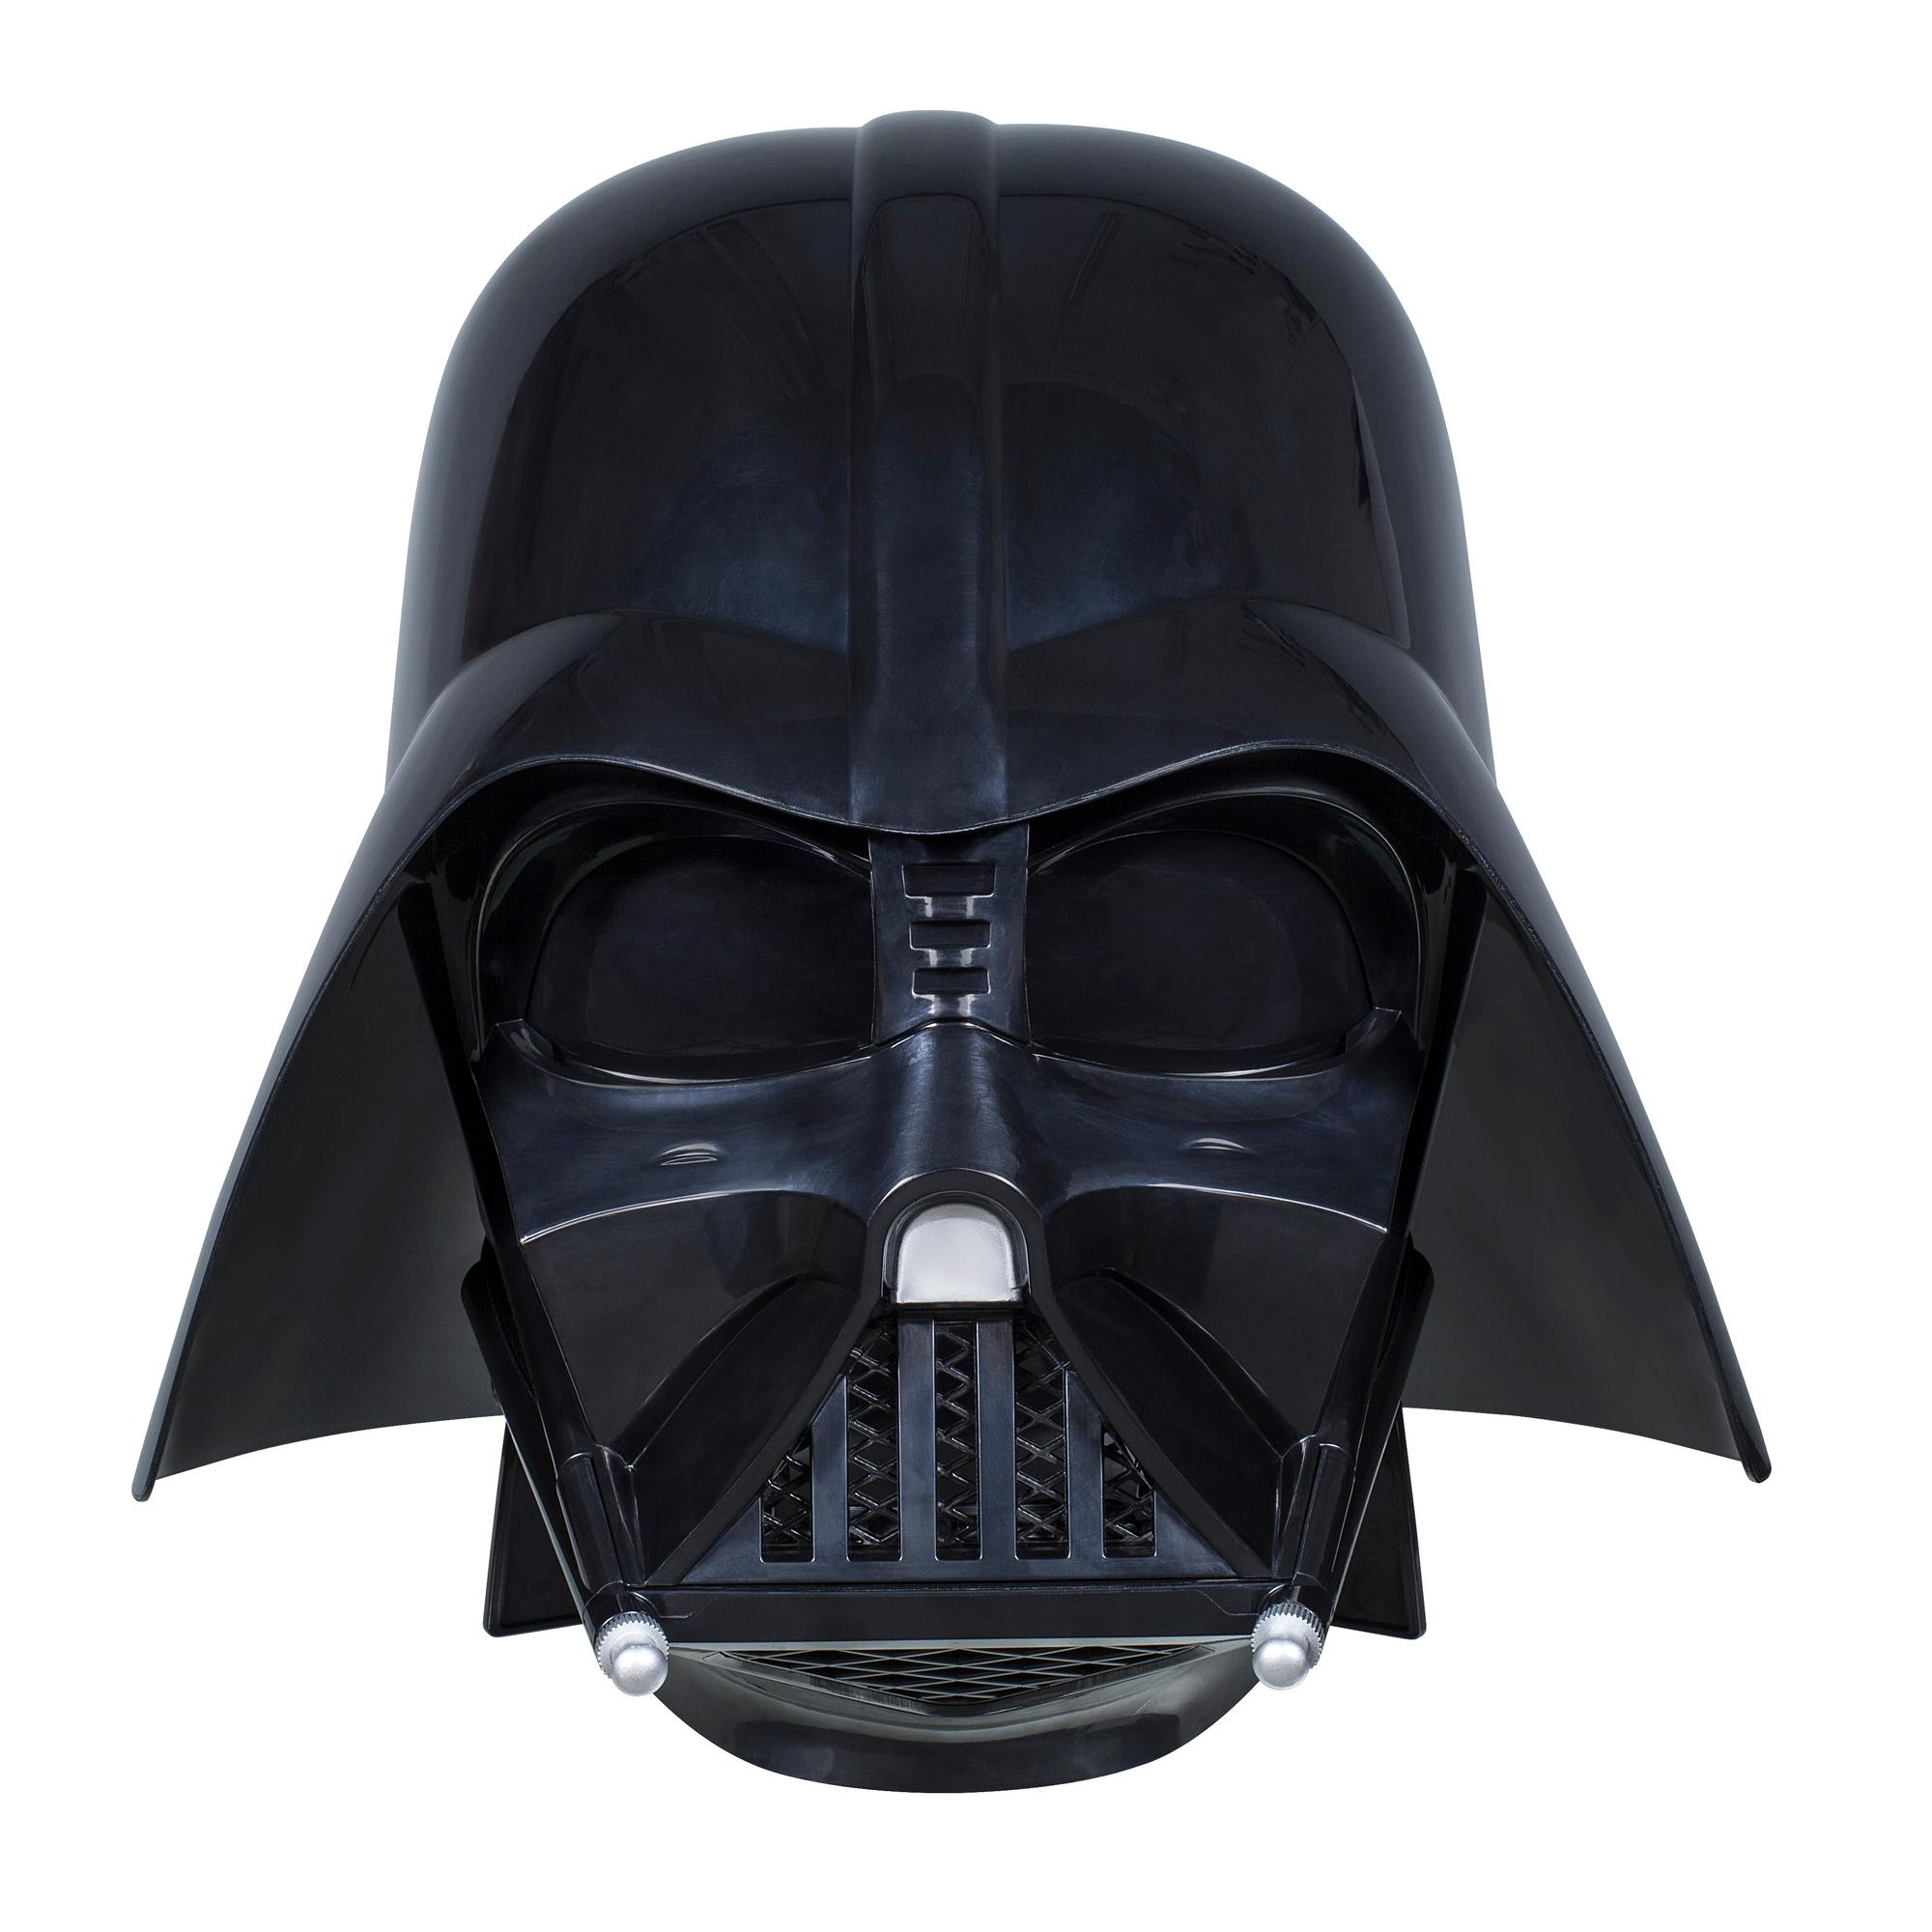 STAR WARS BLACK SERIES - CASQUE ELECTRONIQUE